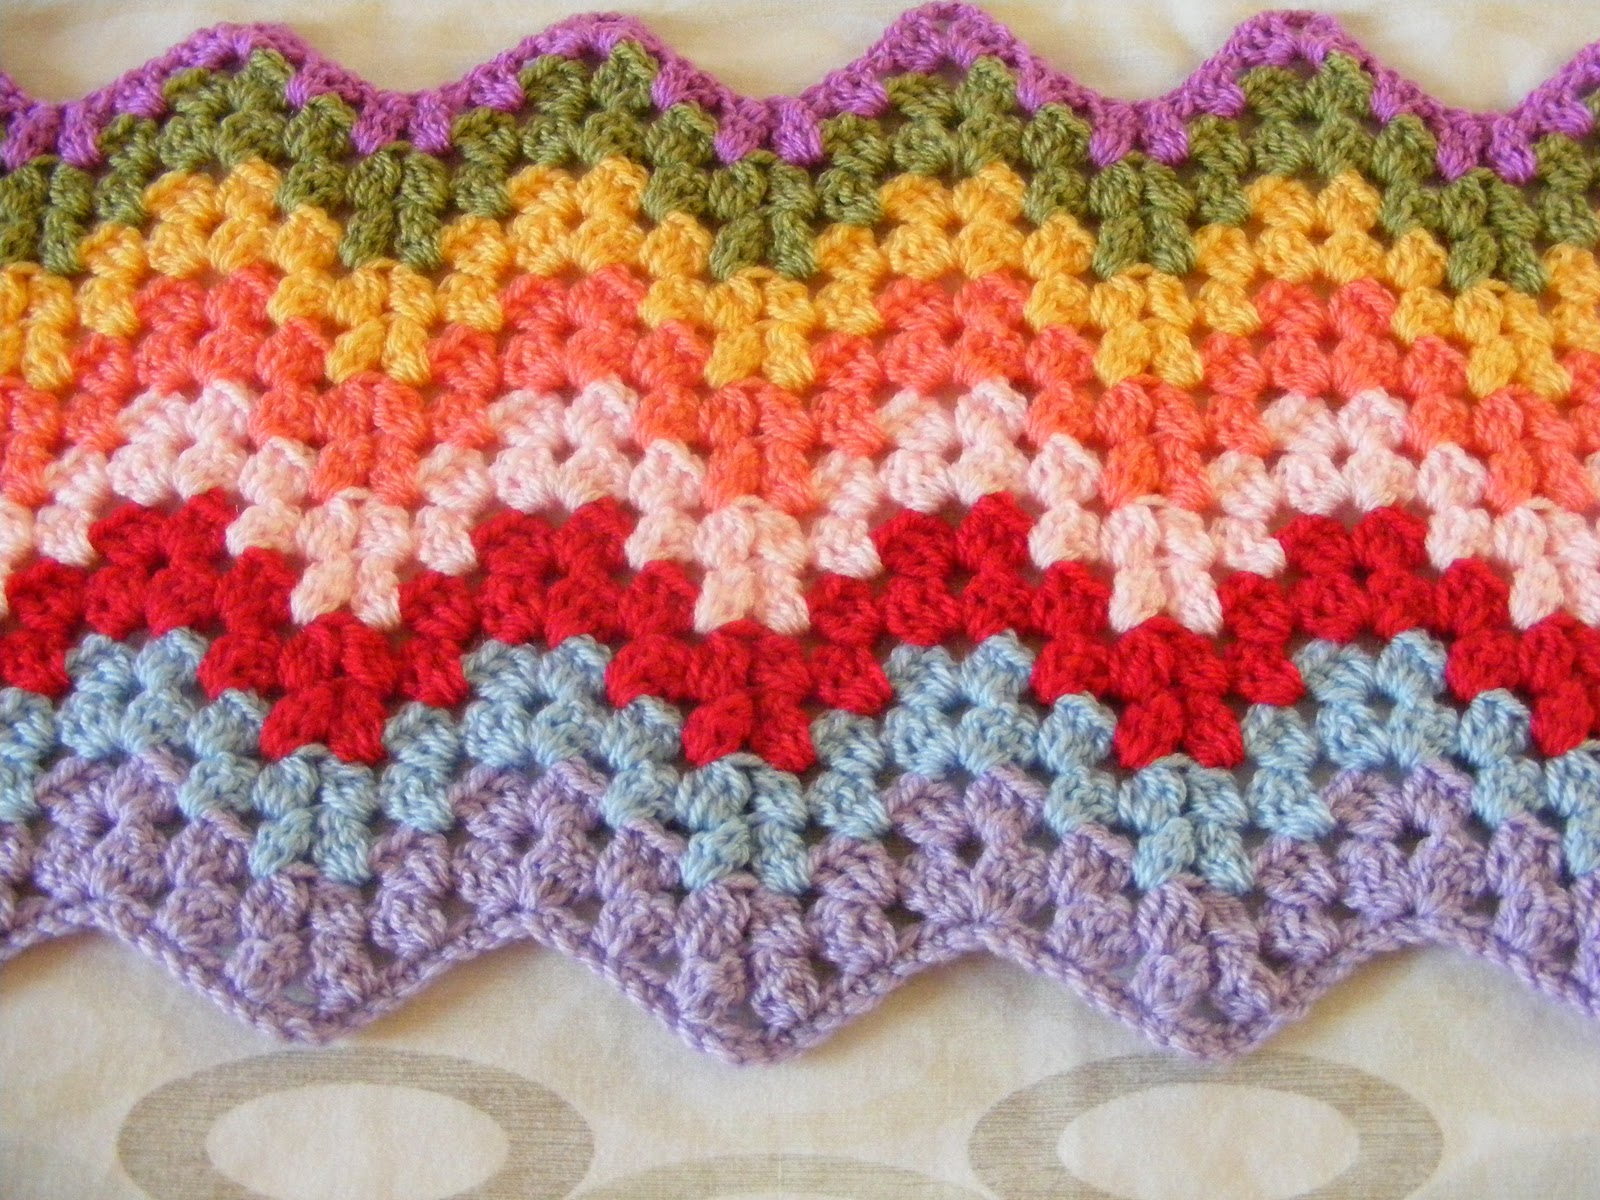 Easy Crochet Ripple Afghan Tutorial : pinkfluffywarrior: Granny ripple.